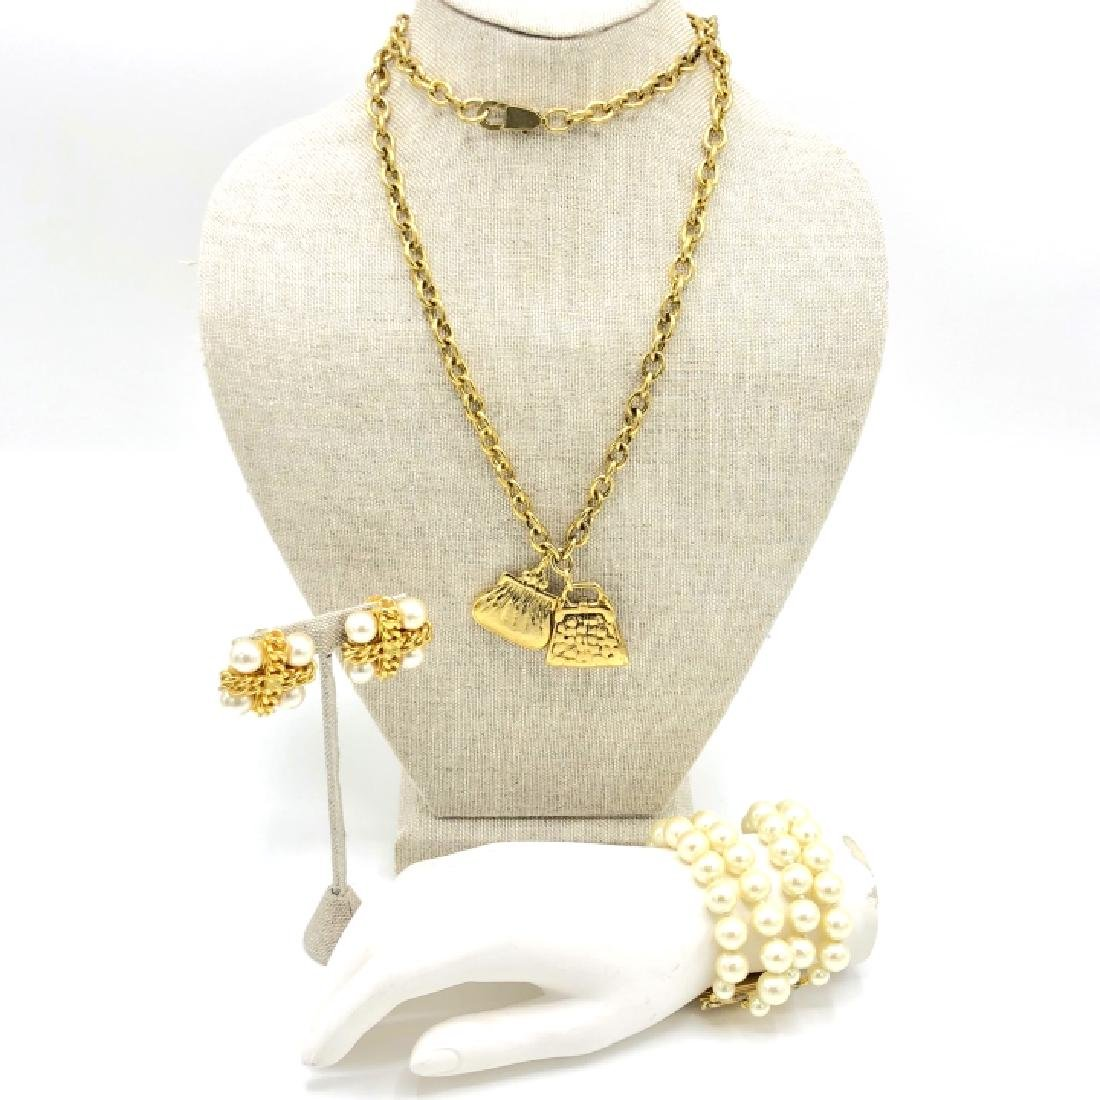 Vintage 80s Costume Chanel Style Jewelry Set - 3